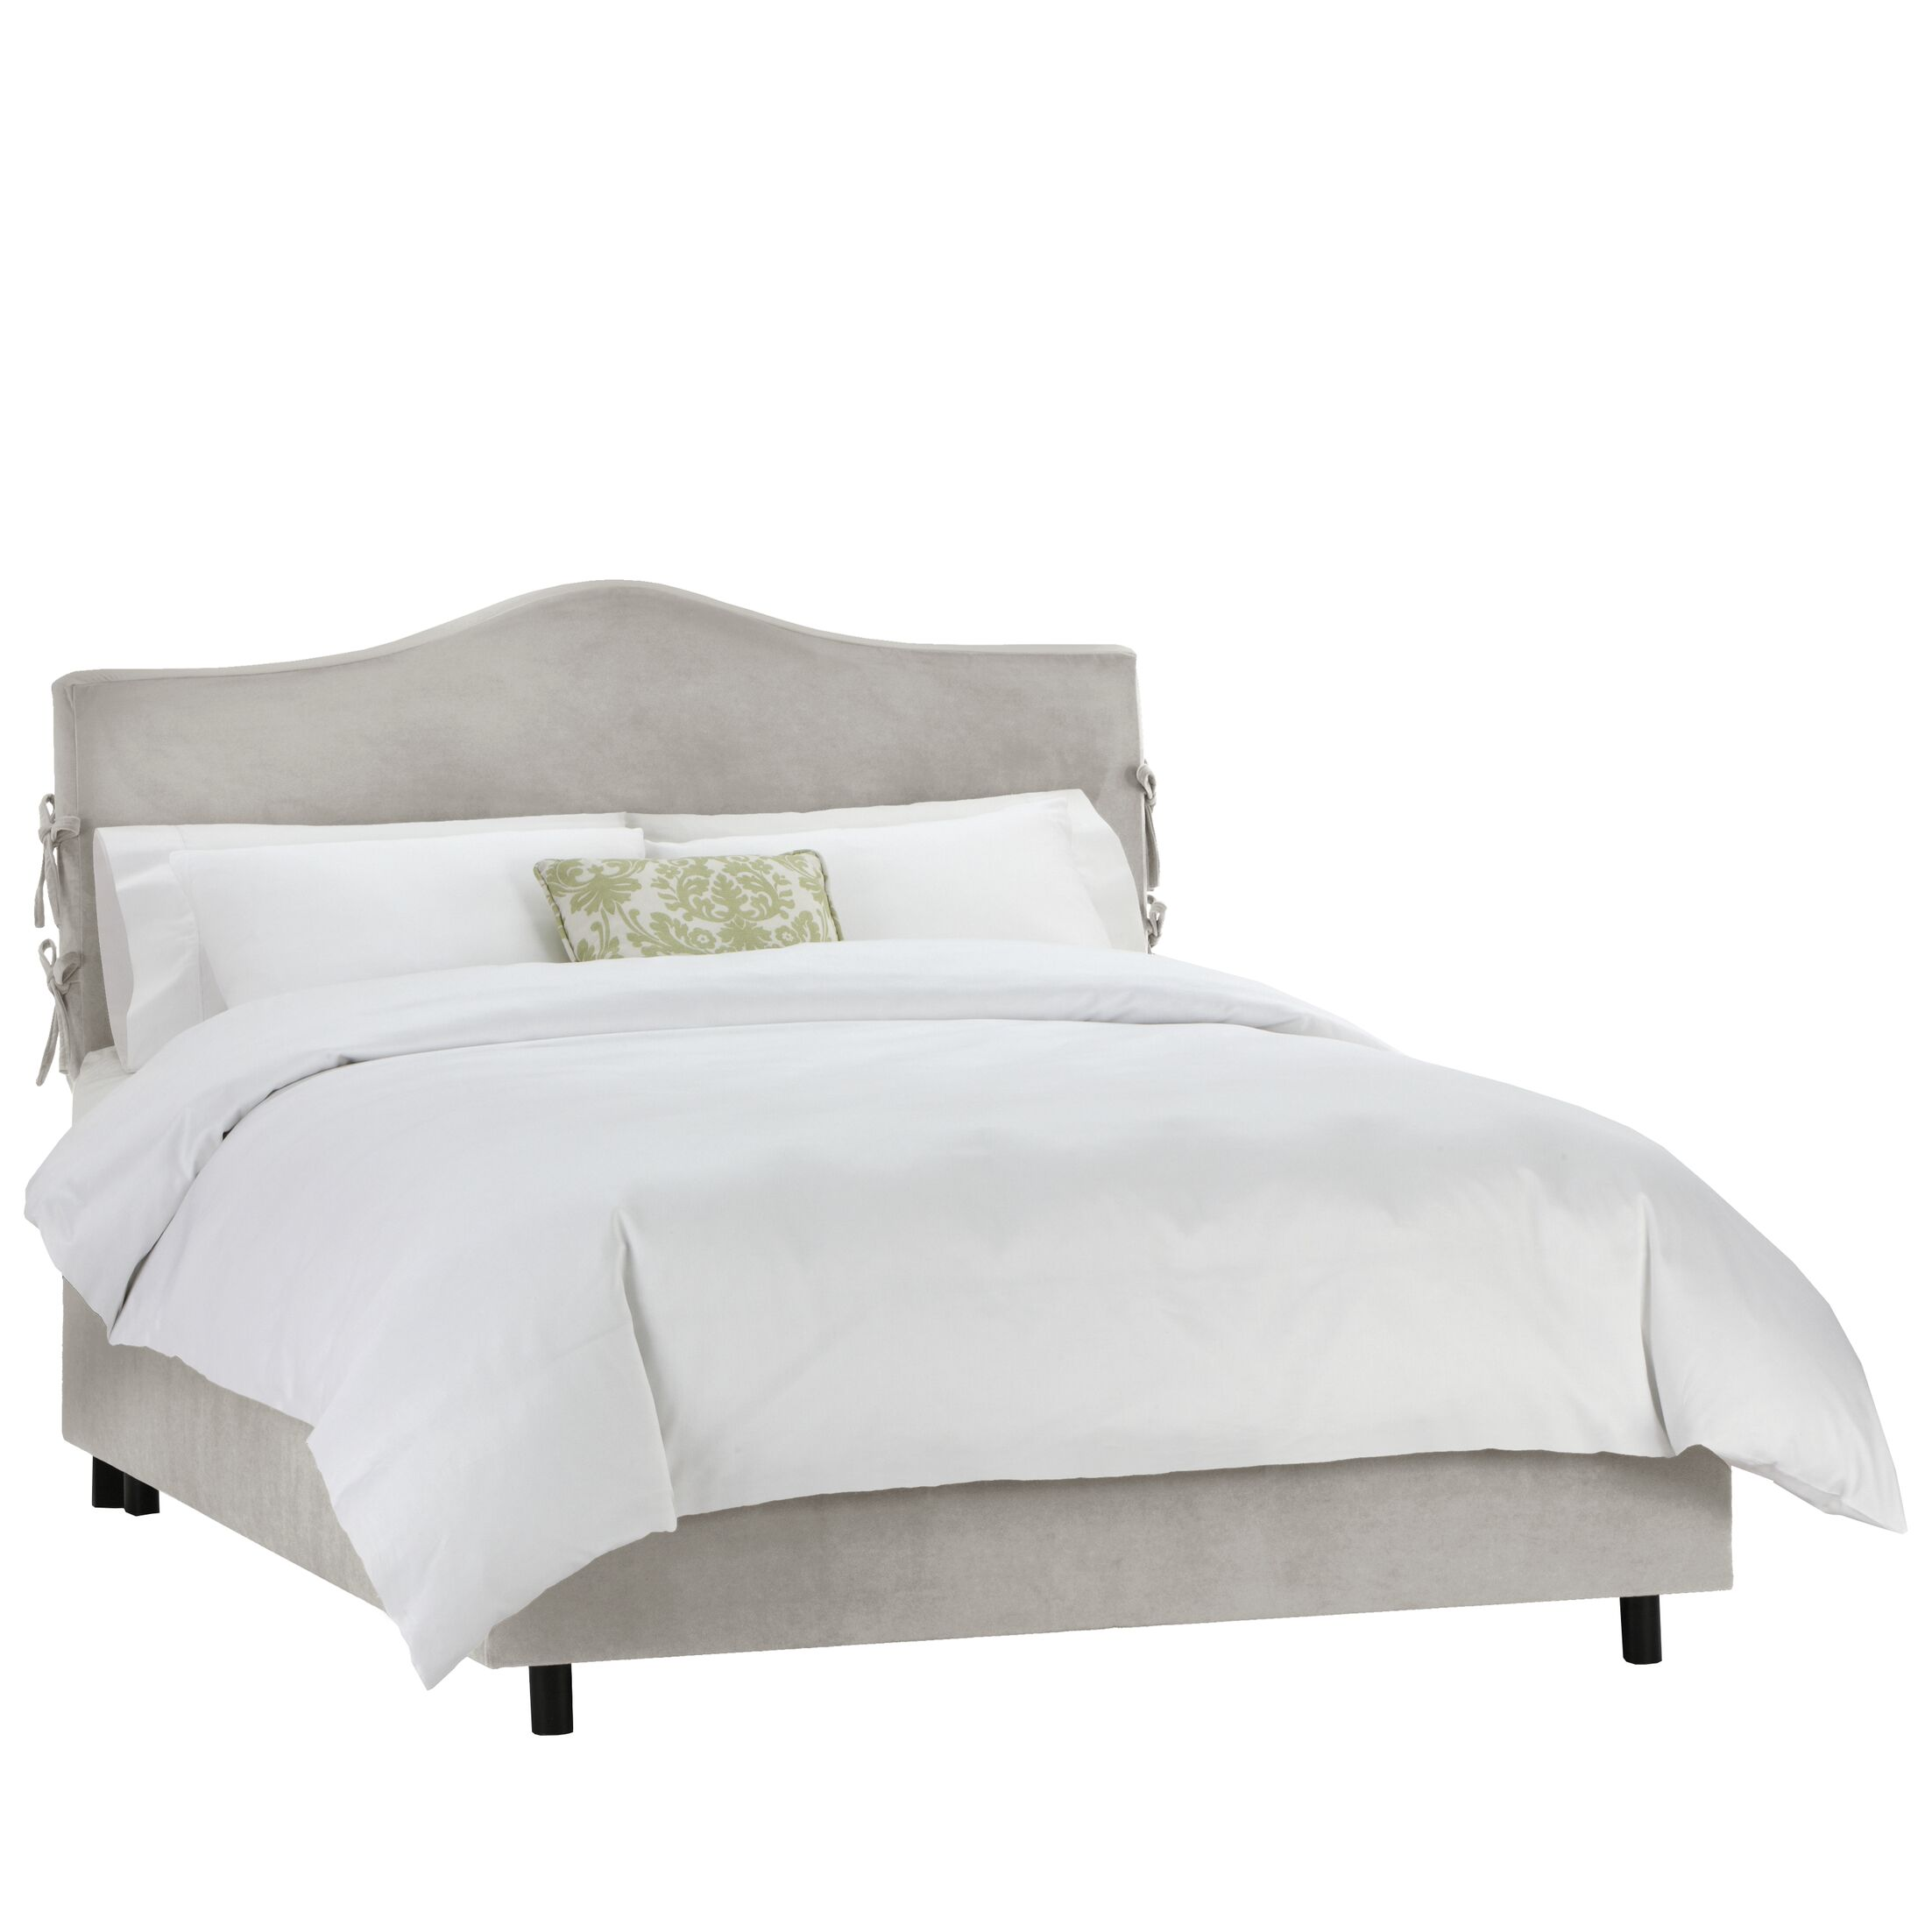 Tatum Upholstered Panel Bed Size: Queen, Color: Mystere Moccasin